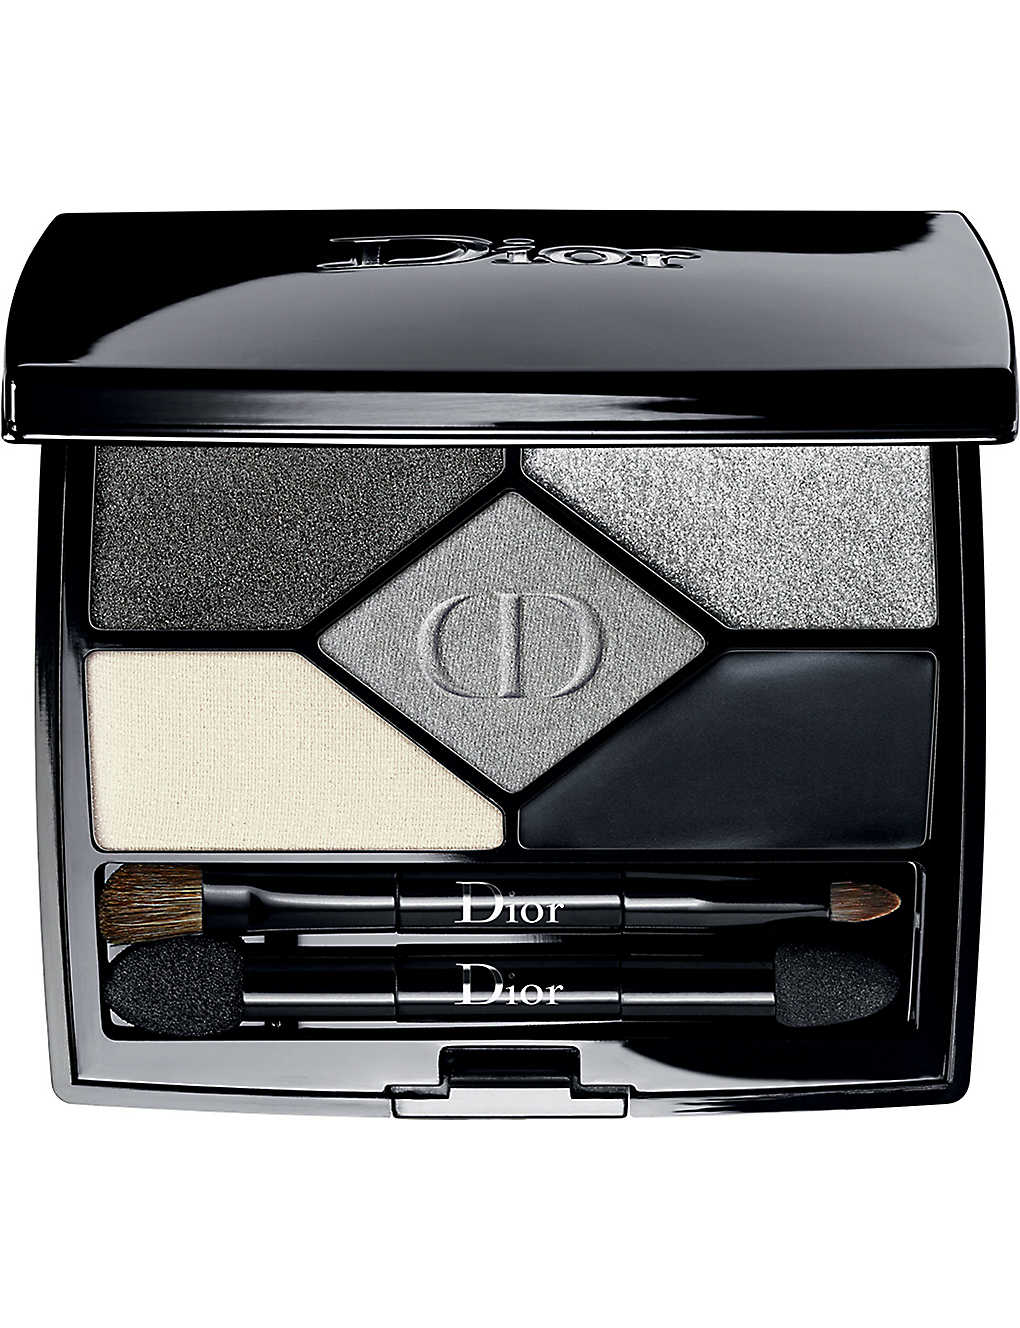 DIOR:5 Couleurs 眼影